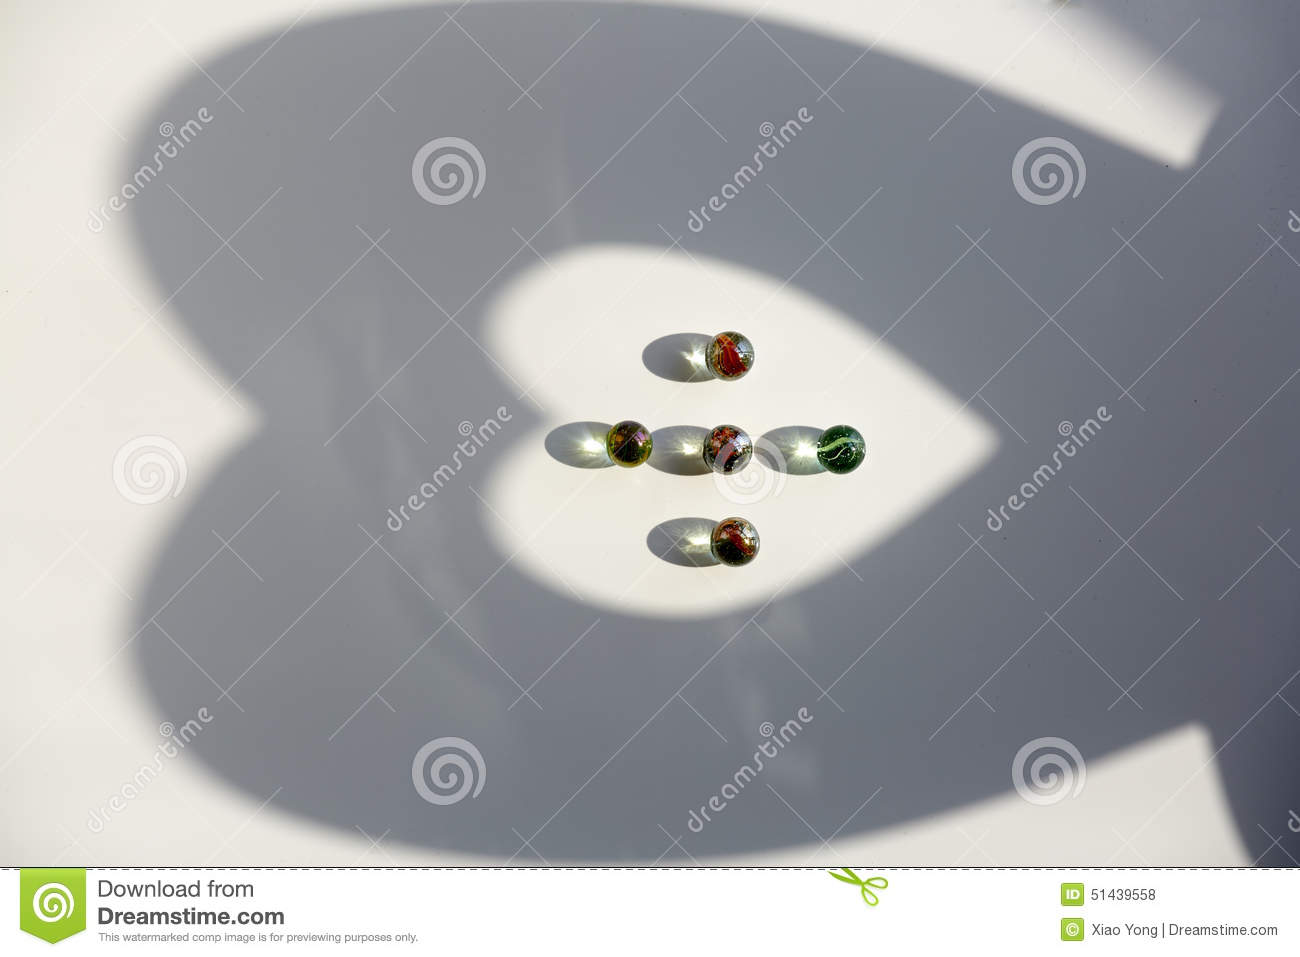 Heart shape, shining glass marbles and shadow